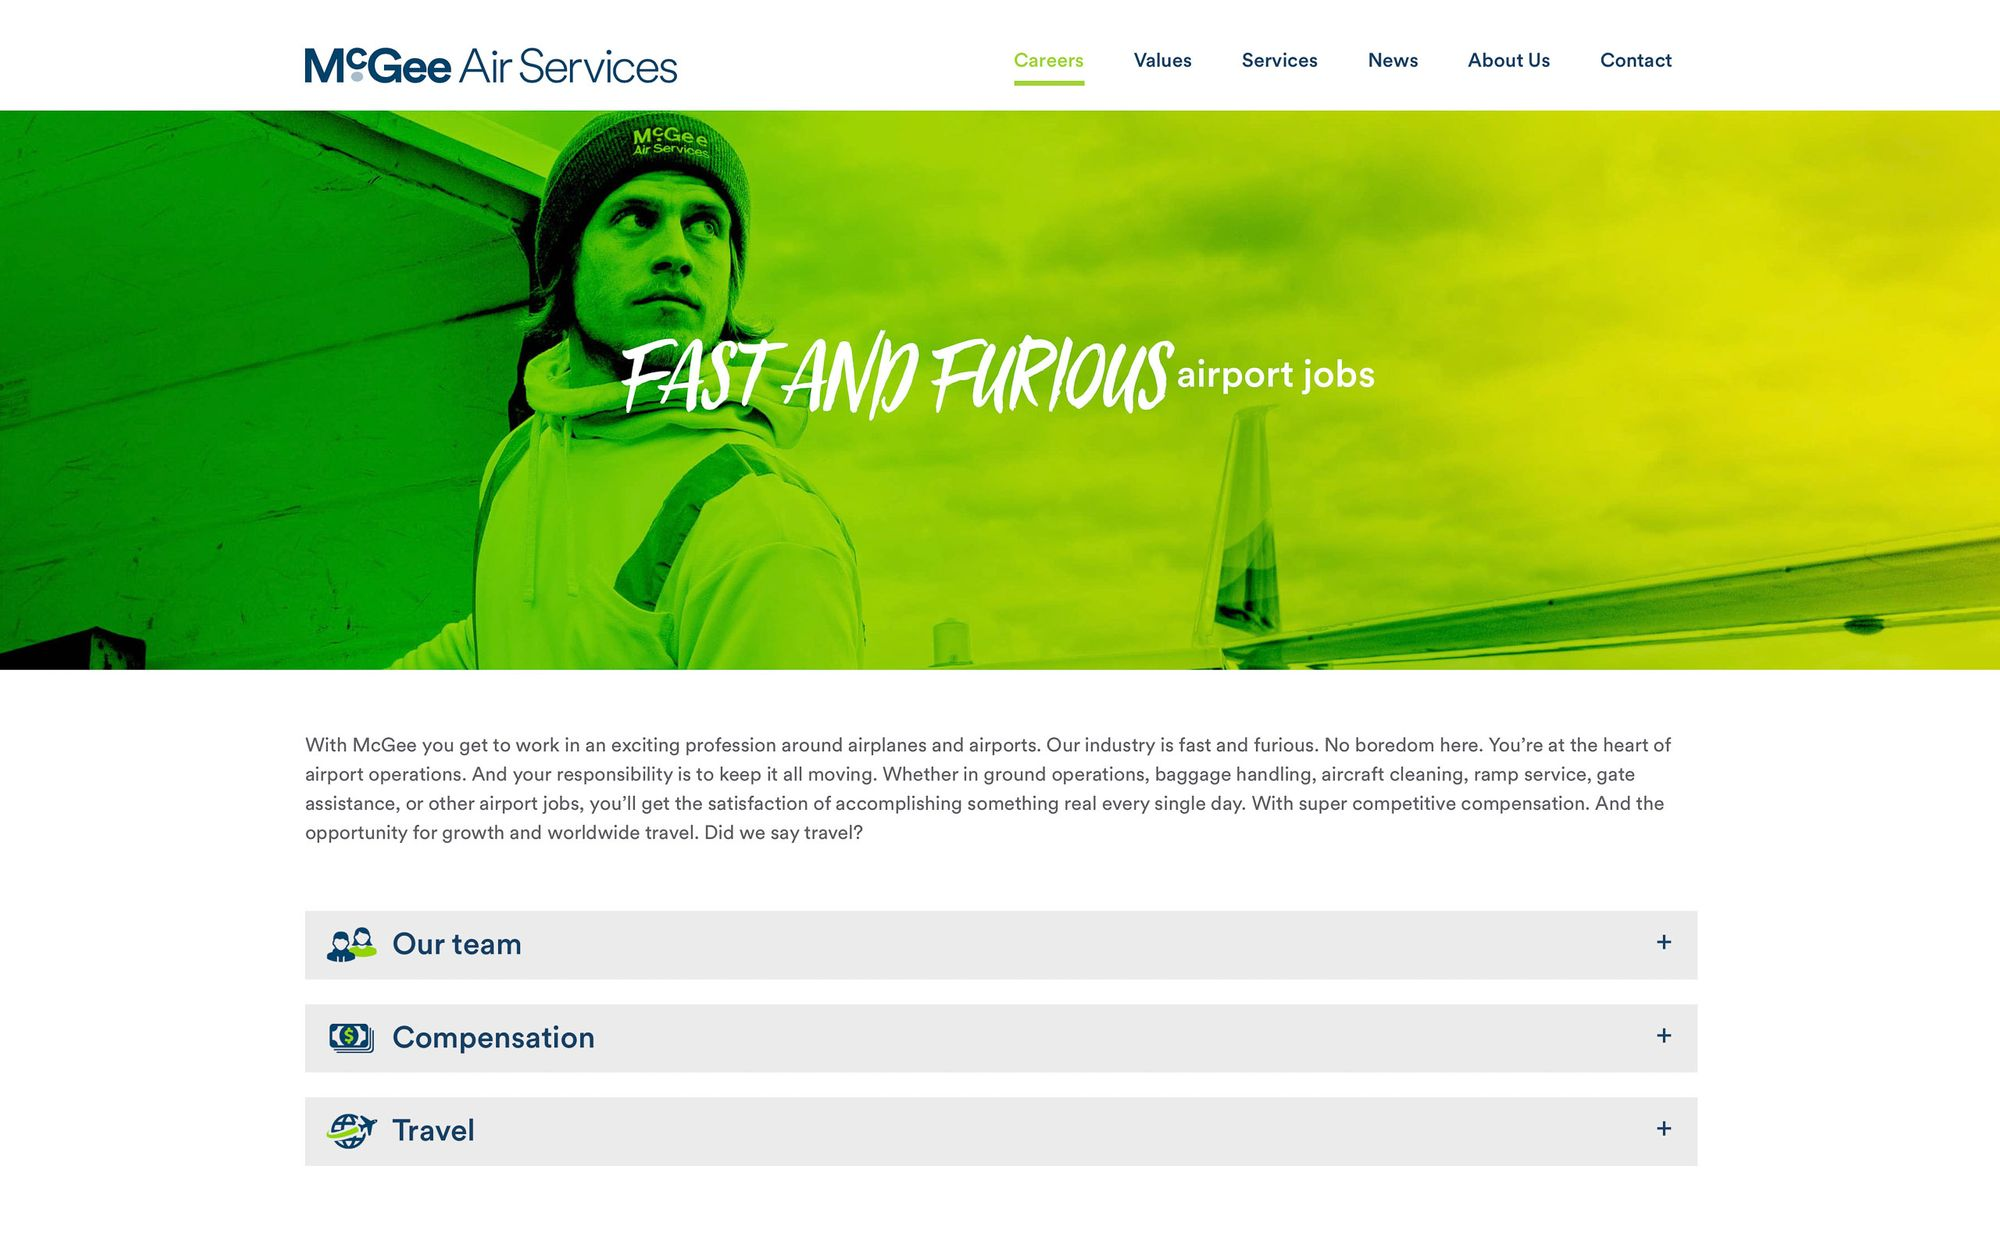 mcgee.airservices_002.jpg